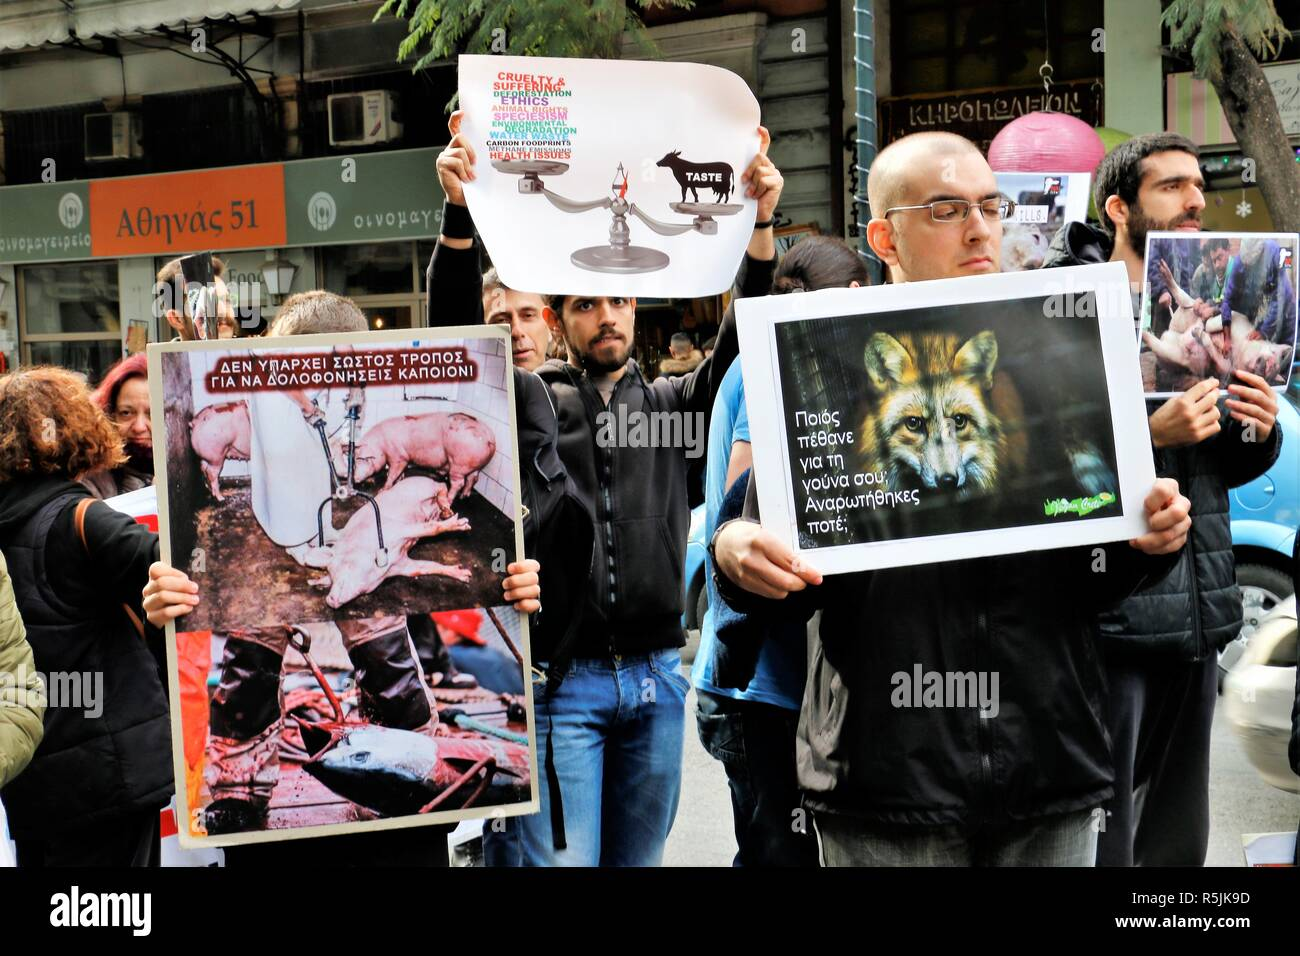 Athens, Greece. 1st Dec, 2018. Protesters are seen holding placards during the protest.Animal right activists demonstrate in Athens against animals' abuse, violence, mistreatment towards animals and promoting a vegan way of life. Credit: Helen Paroglou/SOPA Images/ZUMA Wire/Alamy Live News - Stock Image